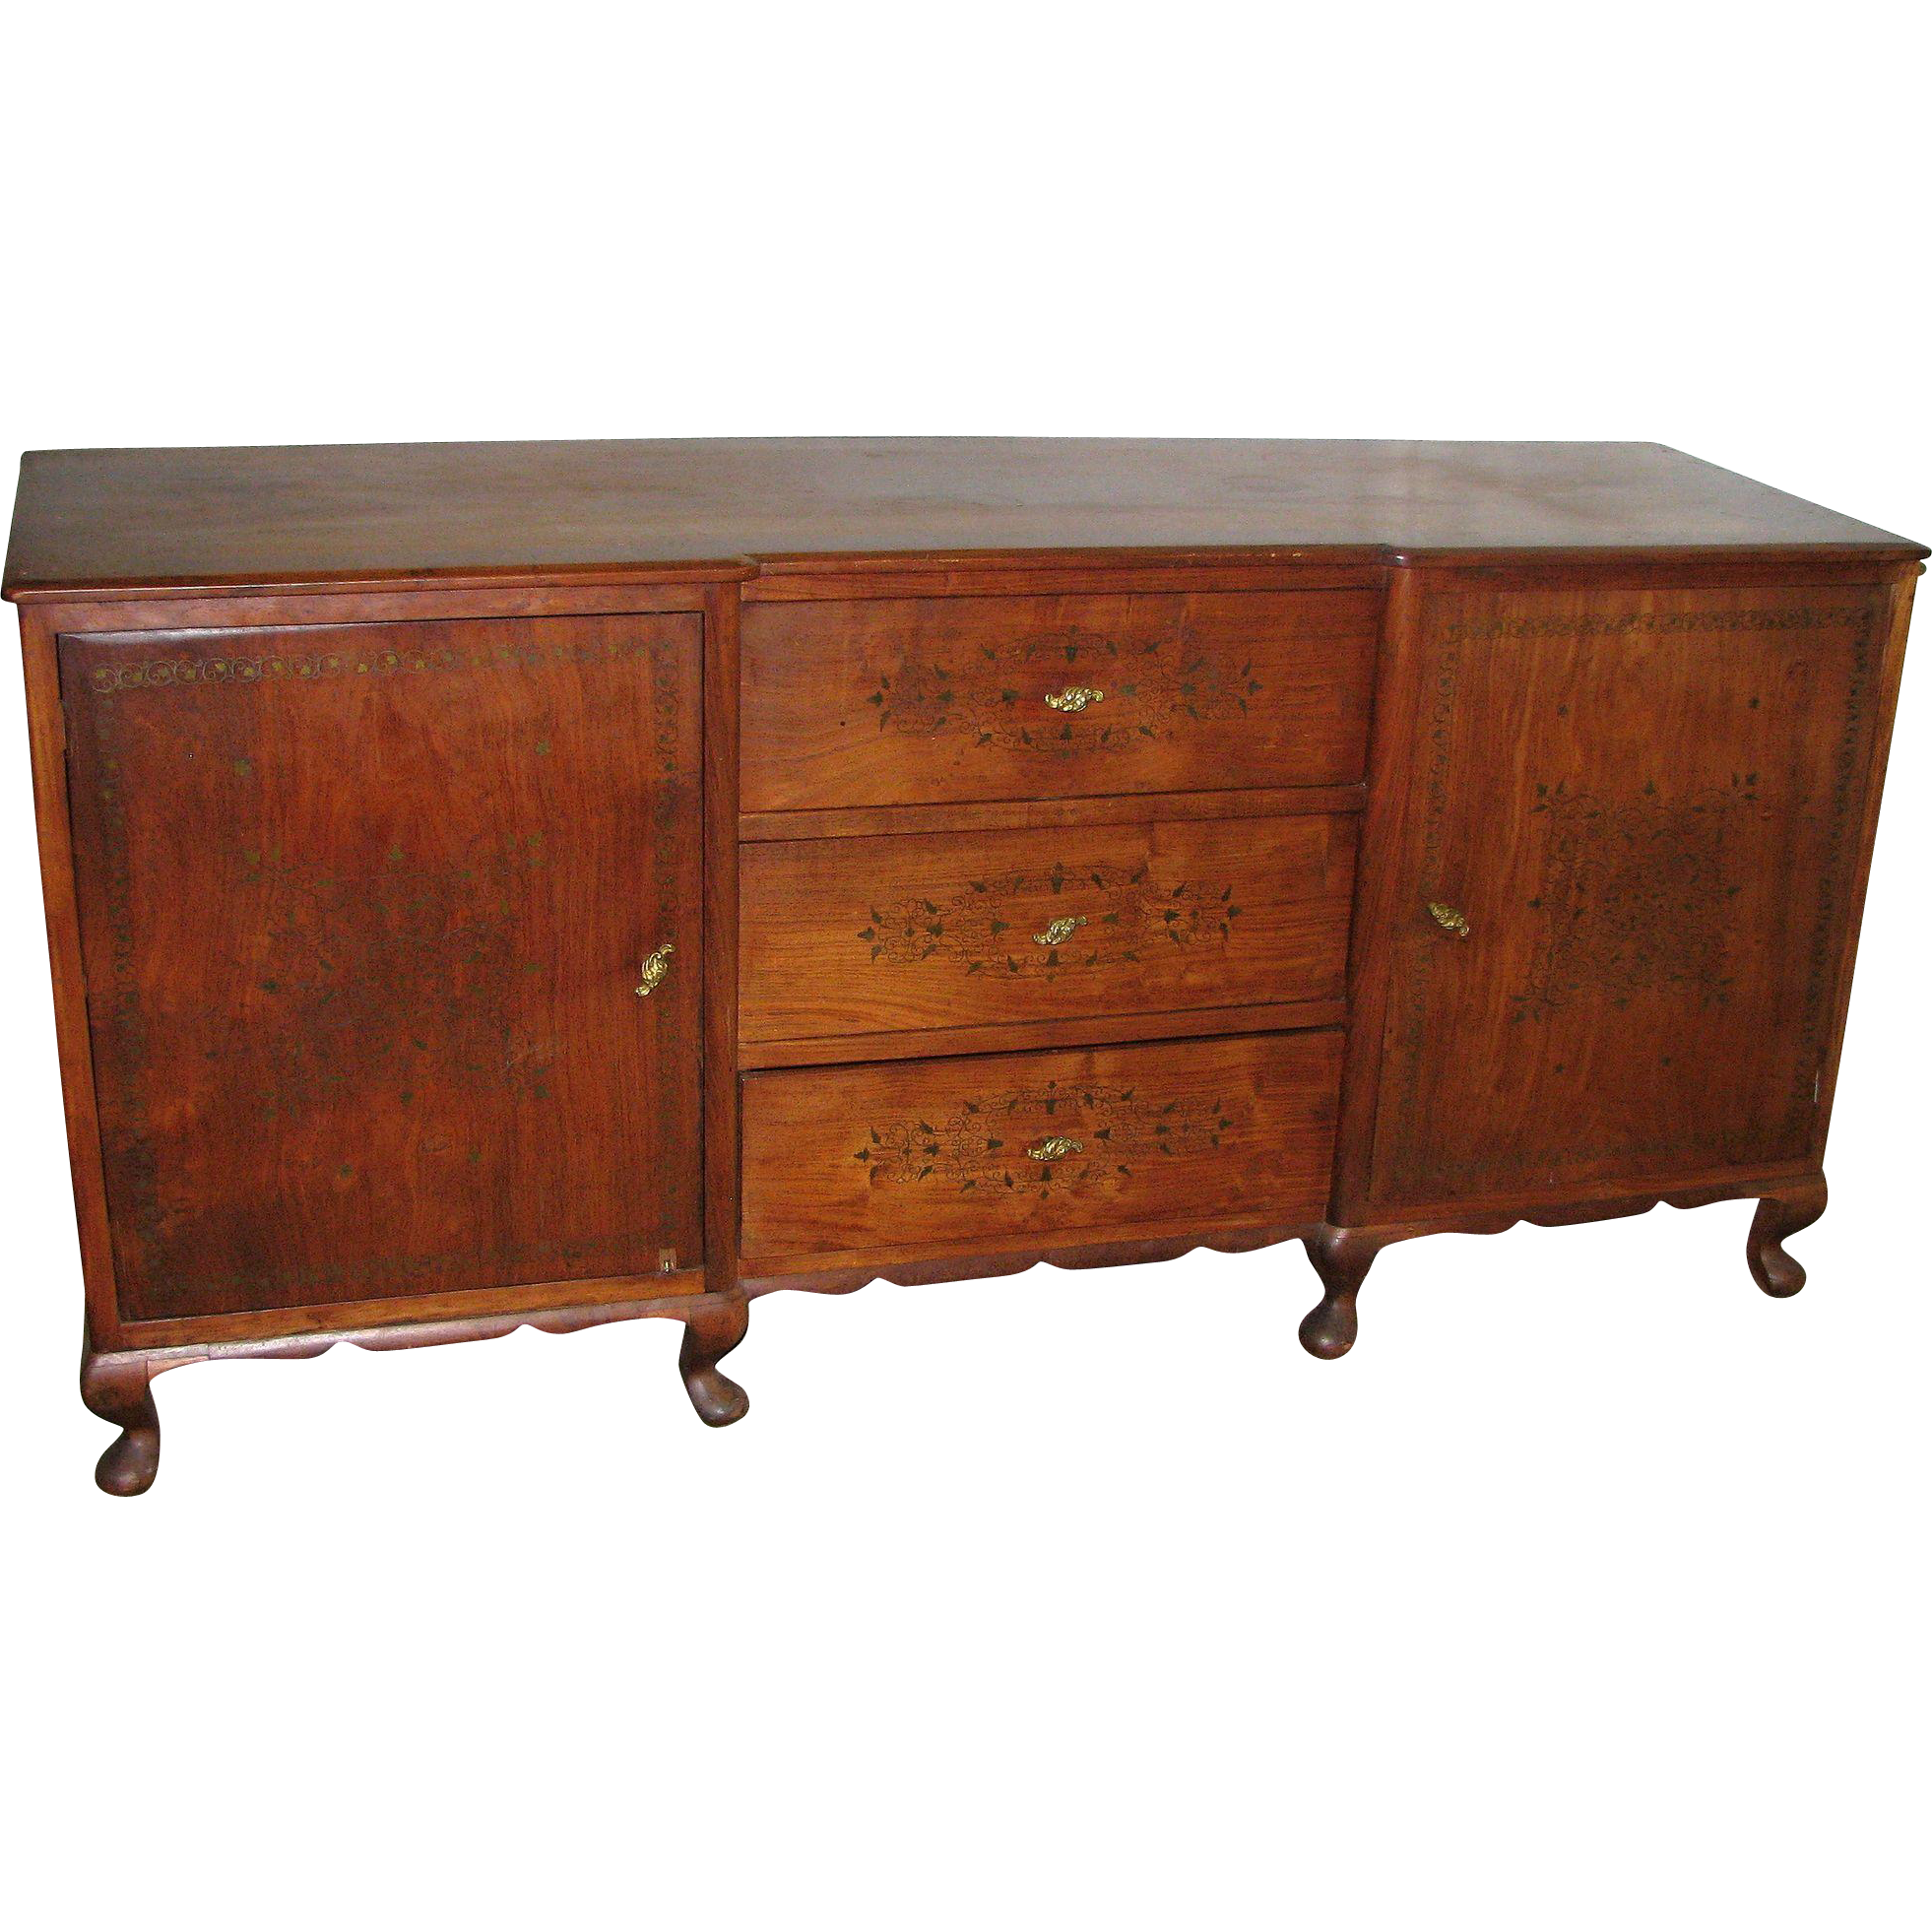 Wooden dresser with inlaid detail